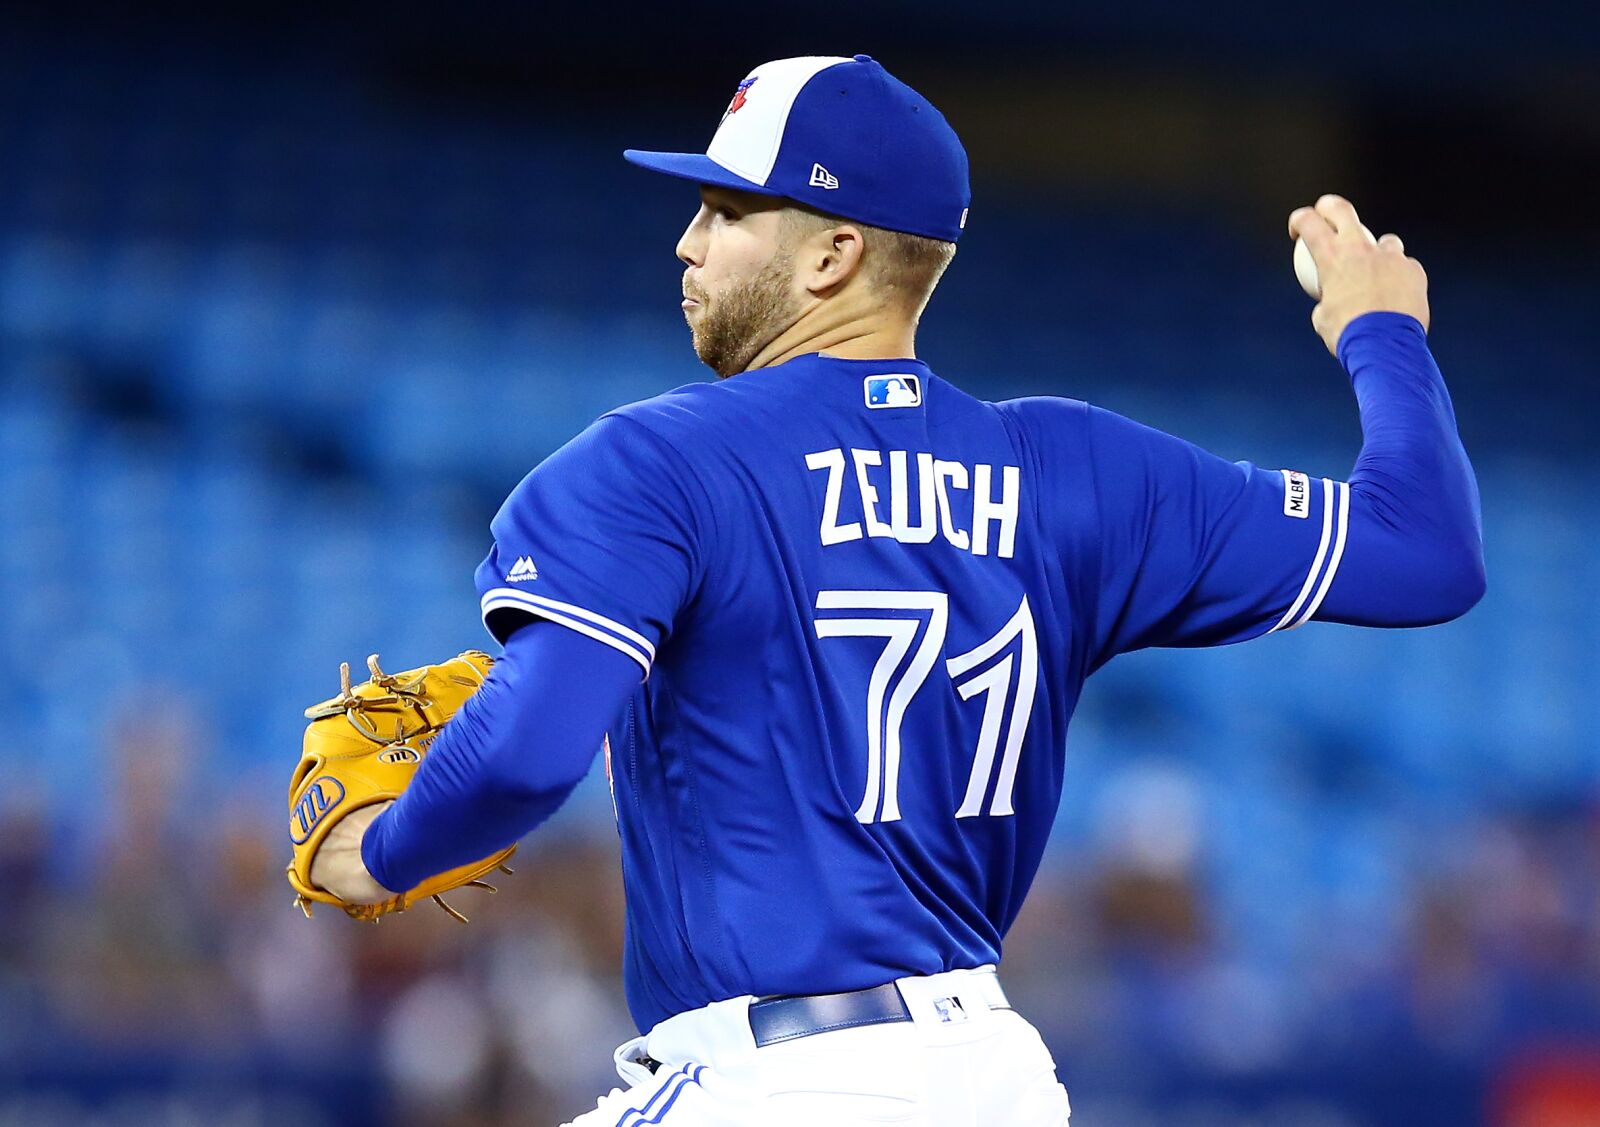 Toronto Blue Jays: T.J. Zeuch dominates Yankees for first win